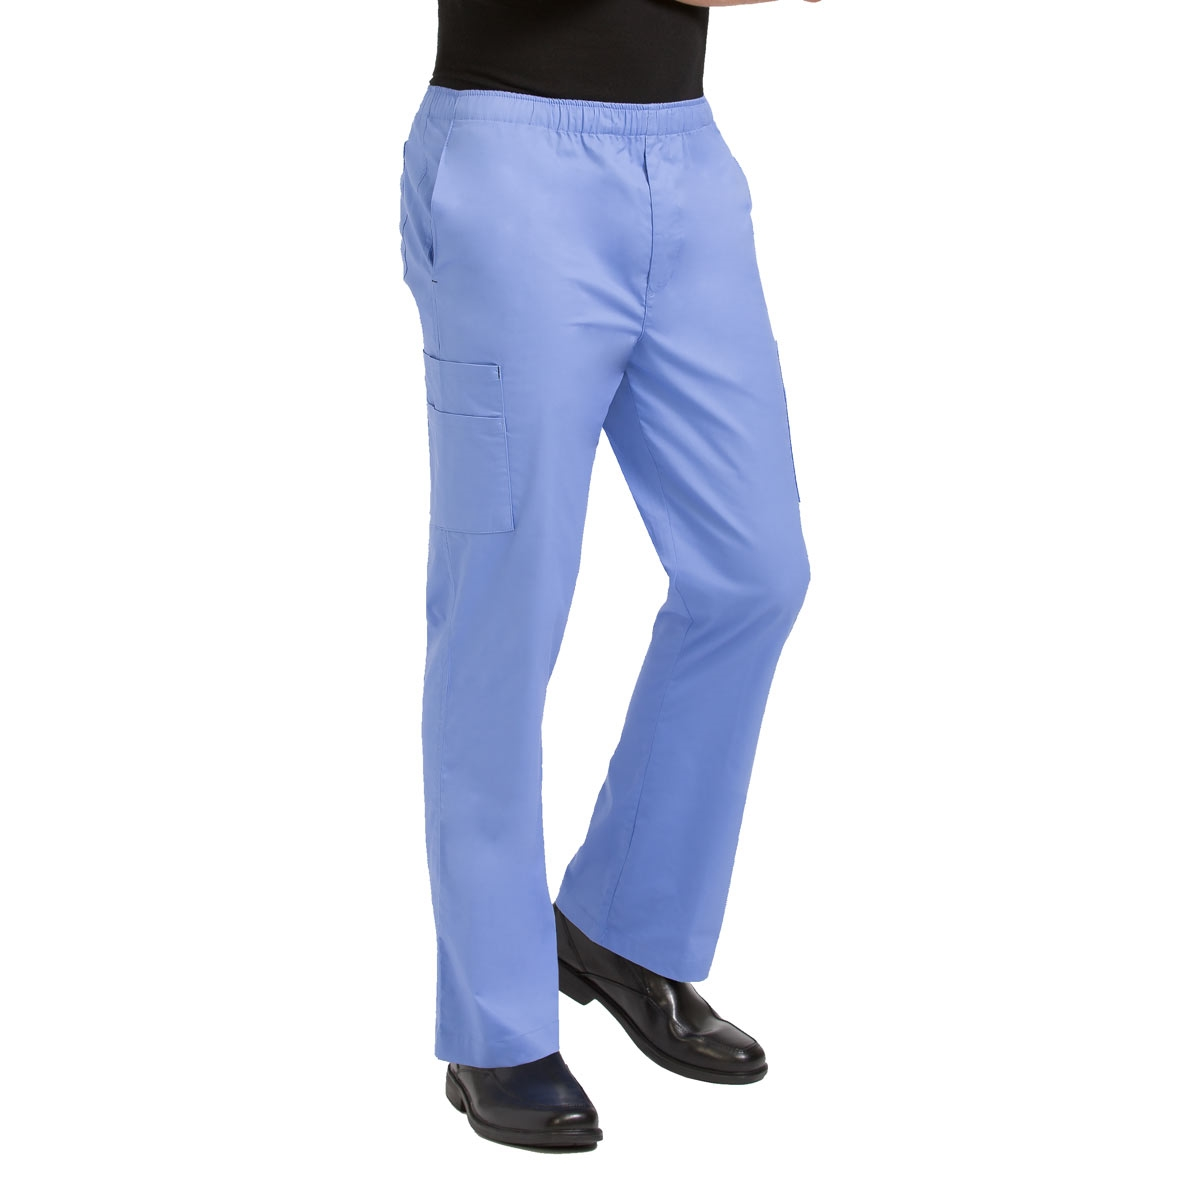 1a4c78c1ad0 Med Couture MC2 Men's Cargo Pant - $29.99 · View Larger Photo